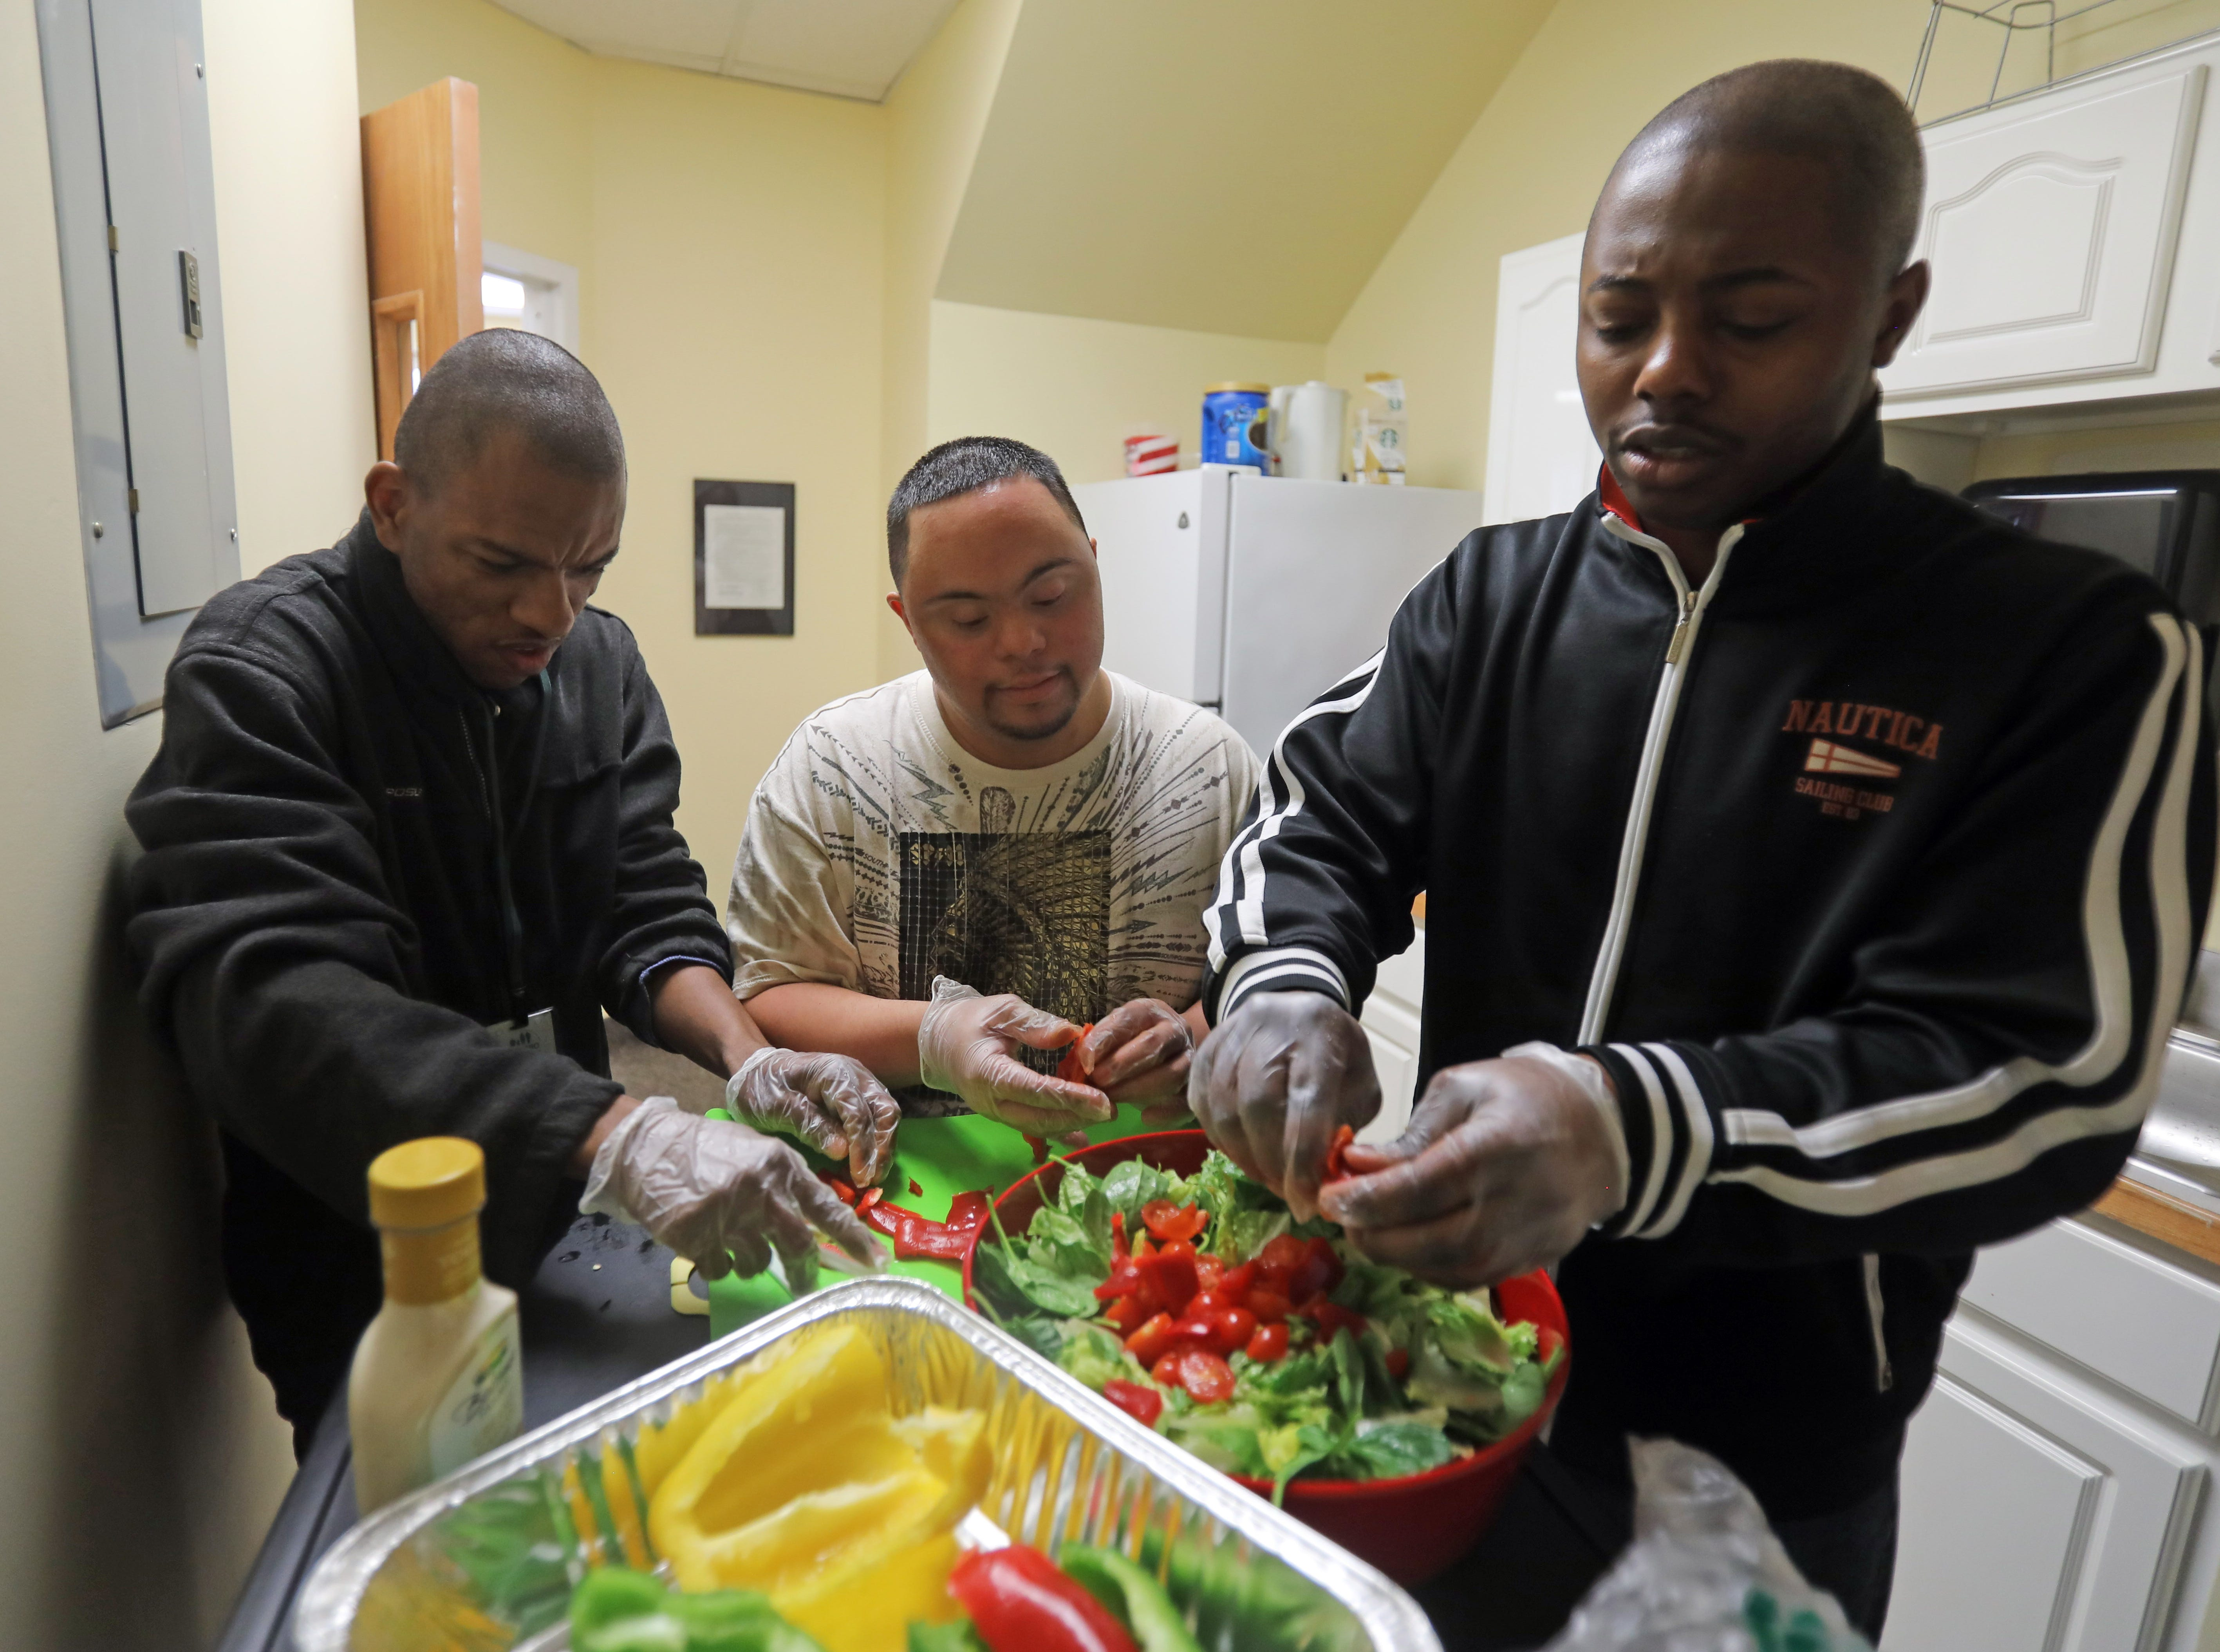 Anthony Mundy, 29, center, and his friends Sebastien Castel, left, and Tyshawn Stewartson, right, cut up veggies to put in the chicken salad that is being served for lunch during a day program atJawoniocalled Without Walls or WOW in Spring Valley March 14, 2019.